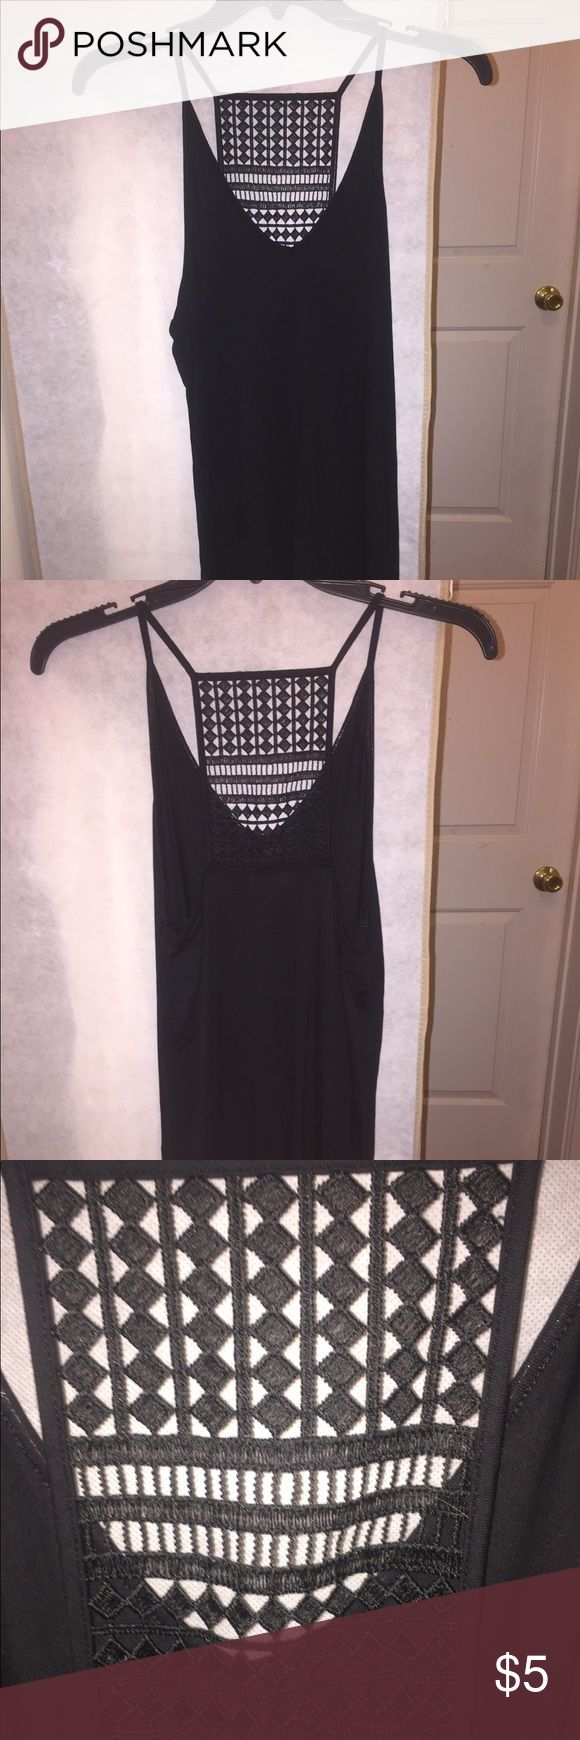 Spaghetti strap tank top Black spaghetti strap tank top with an open detailed back. Old Navy Tops Tank Tops